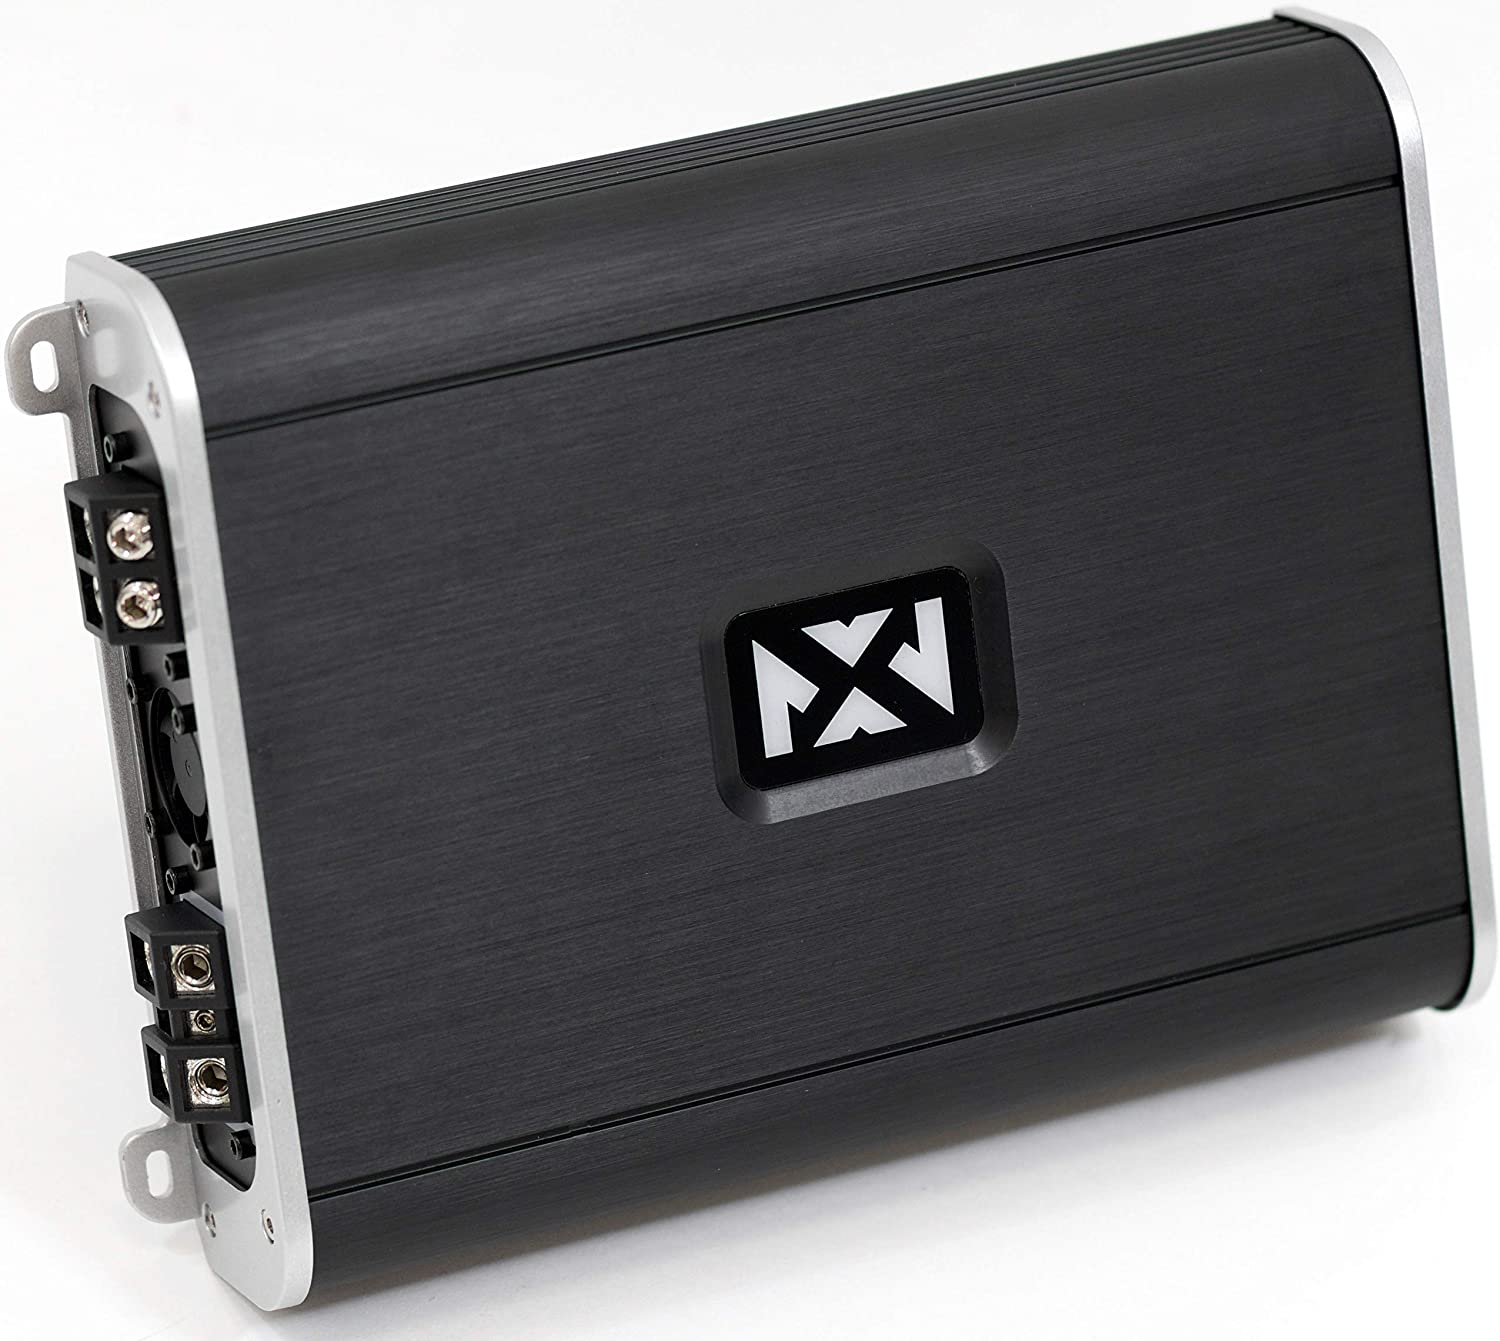 Marine Certified NVX VAD17001 1700W RMS Class D Monoblock Car//Marine//Powersports Amplifier with Bass Remote